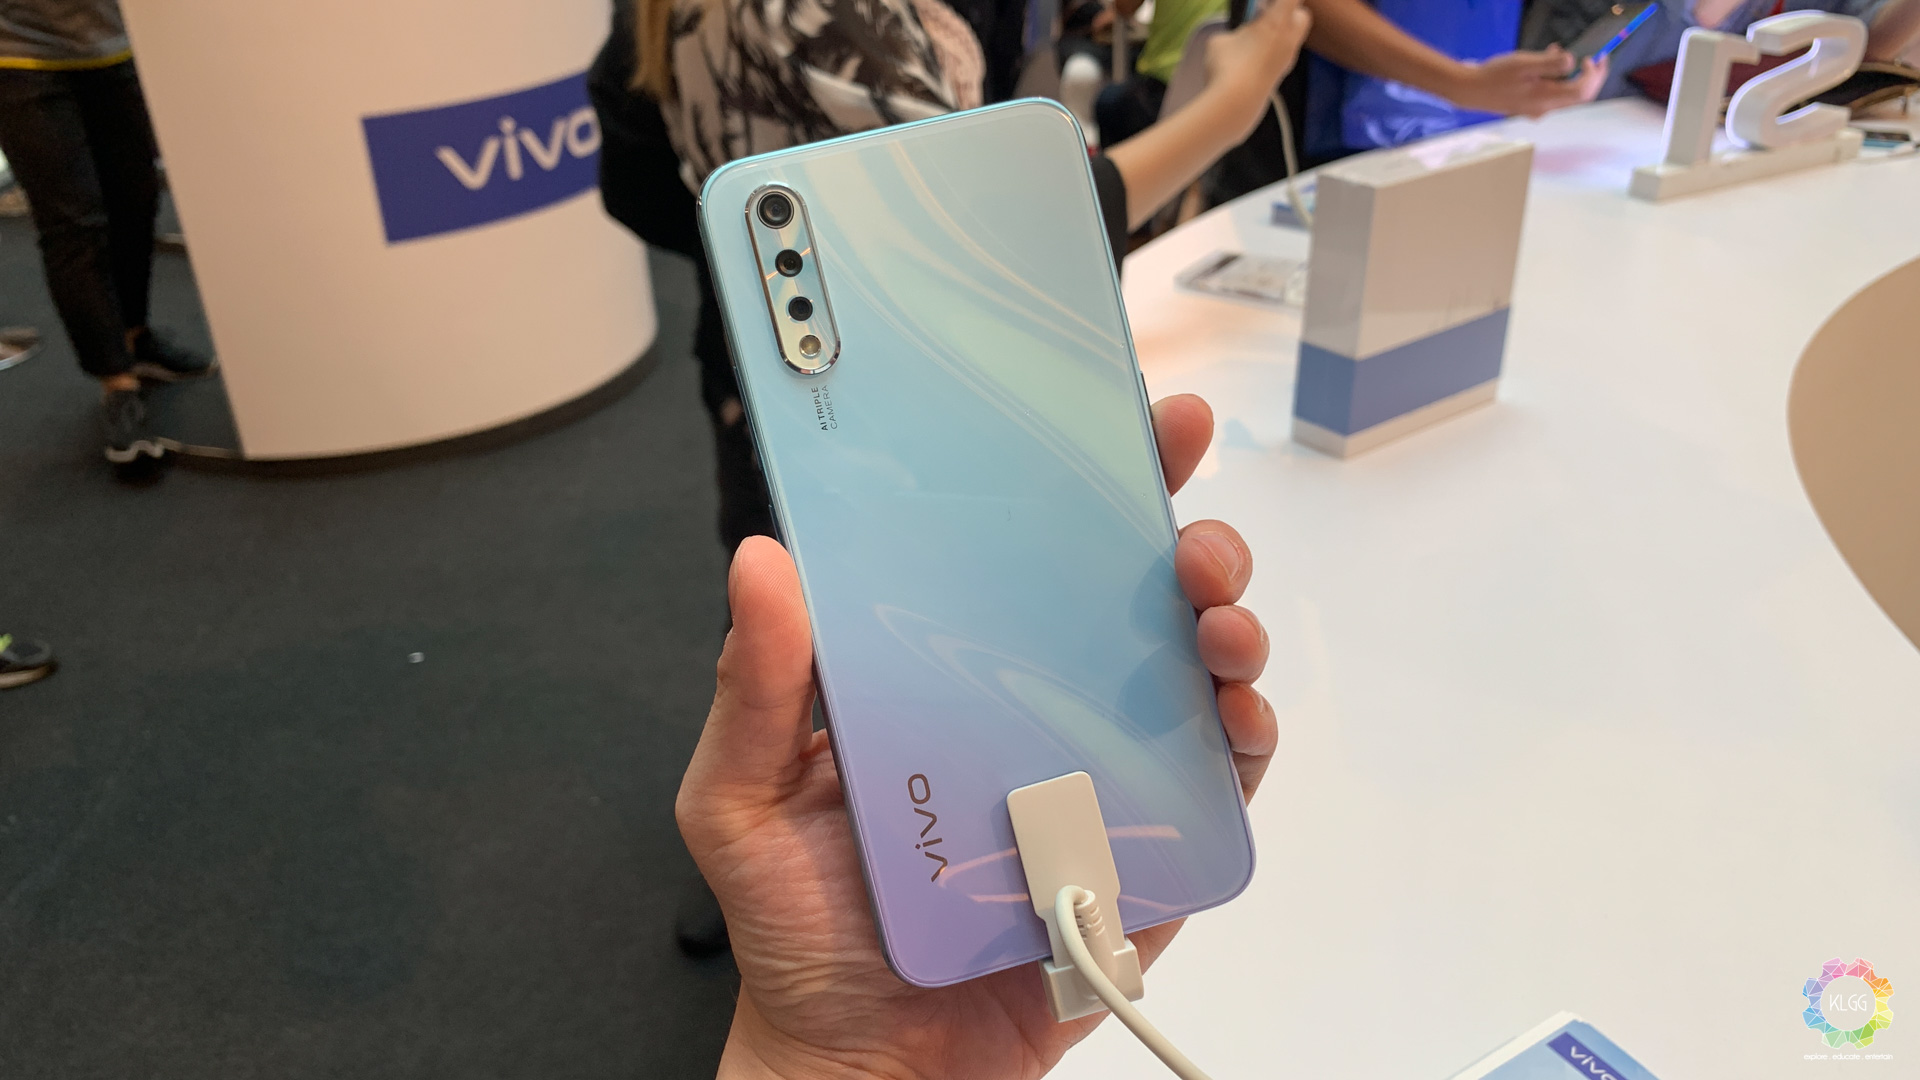 Get the latest Vivo S1 at RM1 by signing up for the Maxis OnePlan 158 1